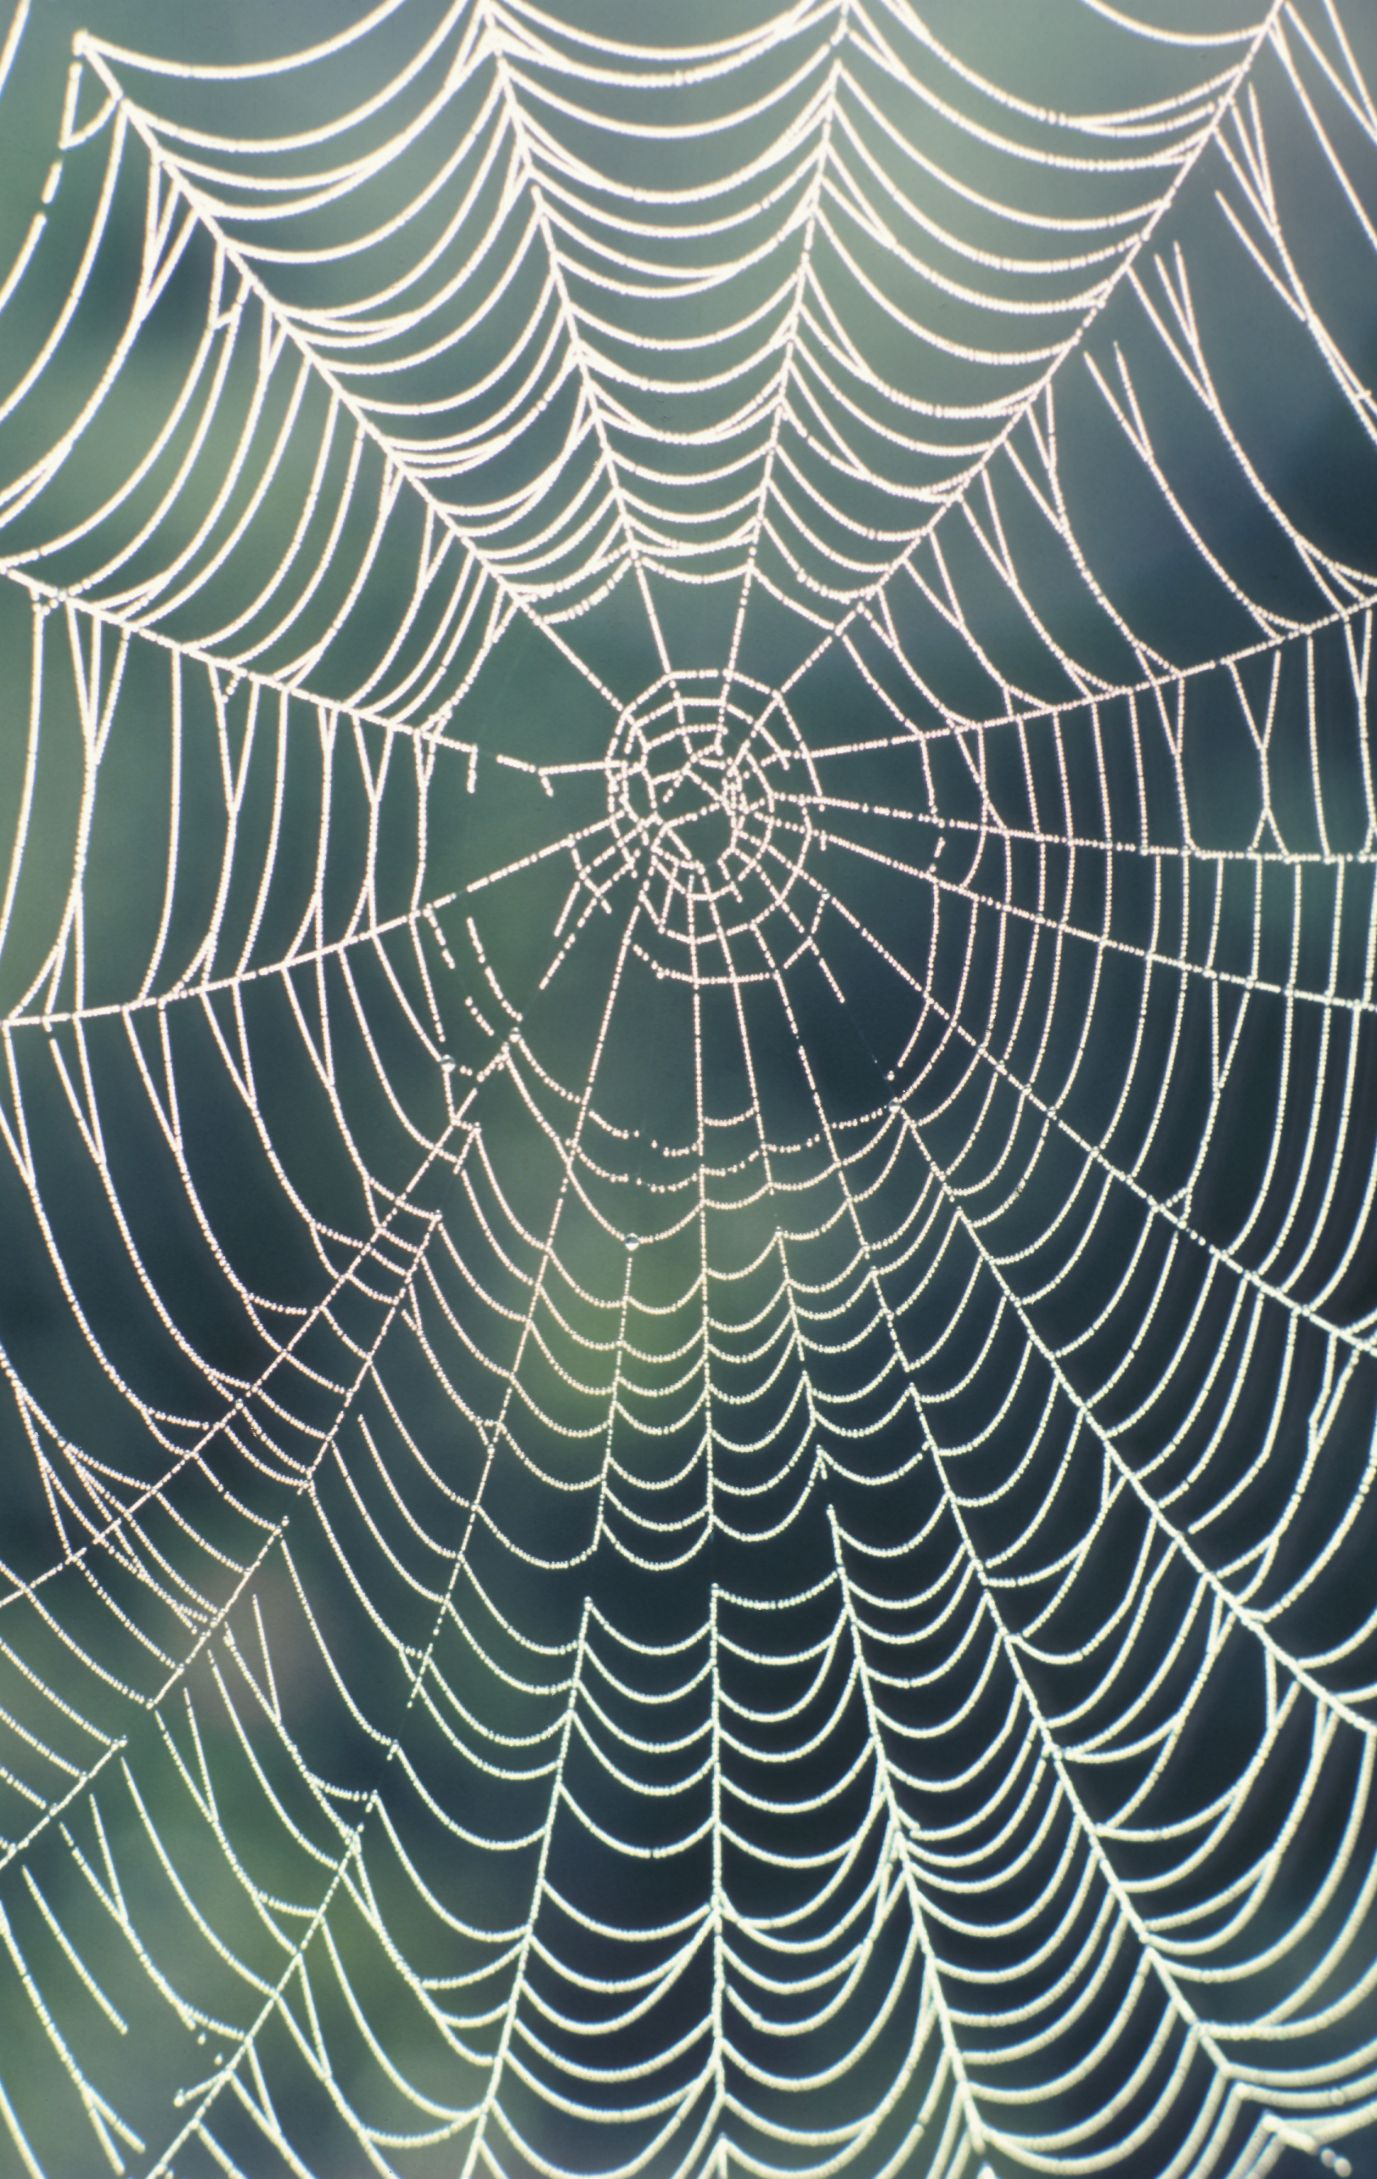 How To Make A Realistic Spider Web Decorating Ideas Fake Spider